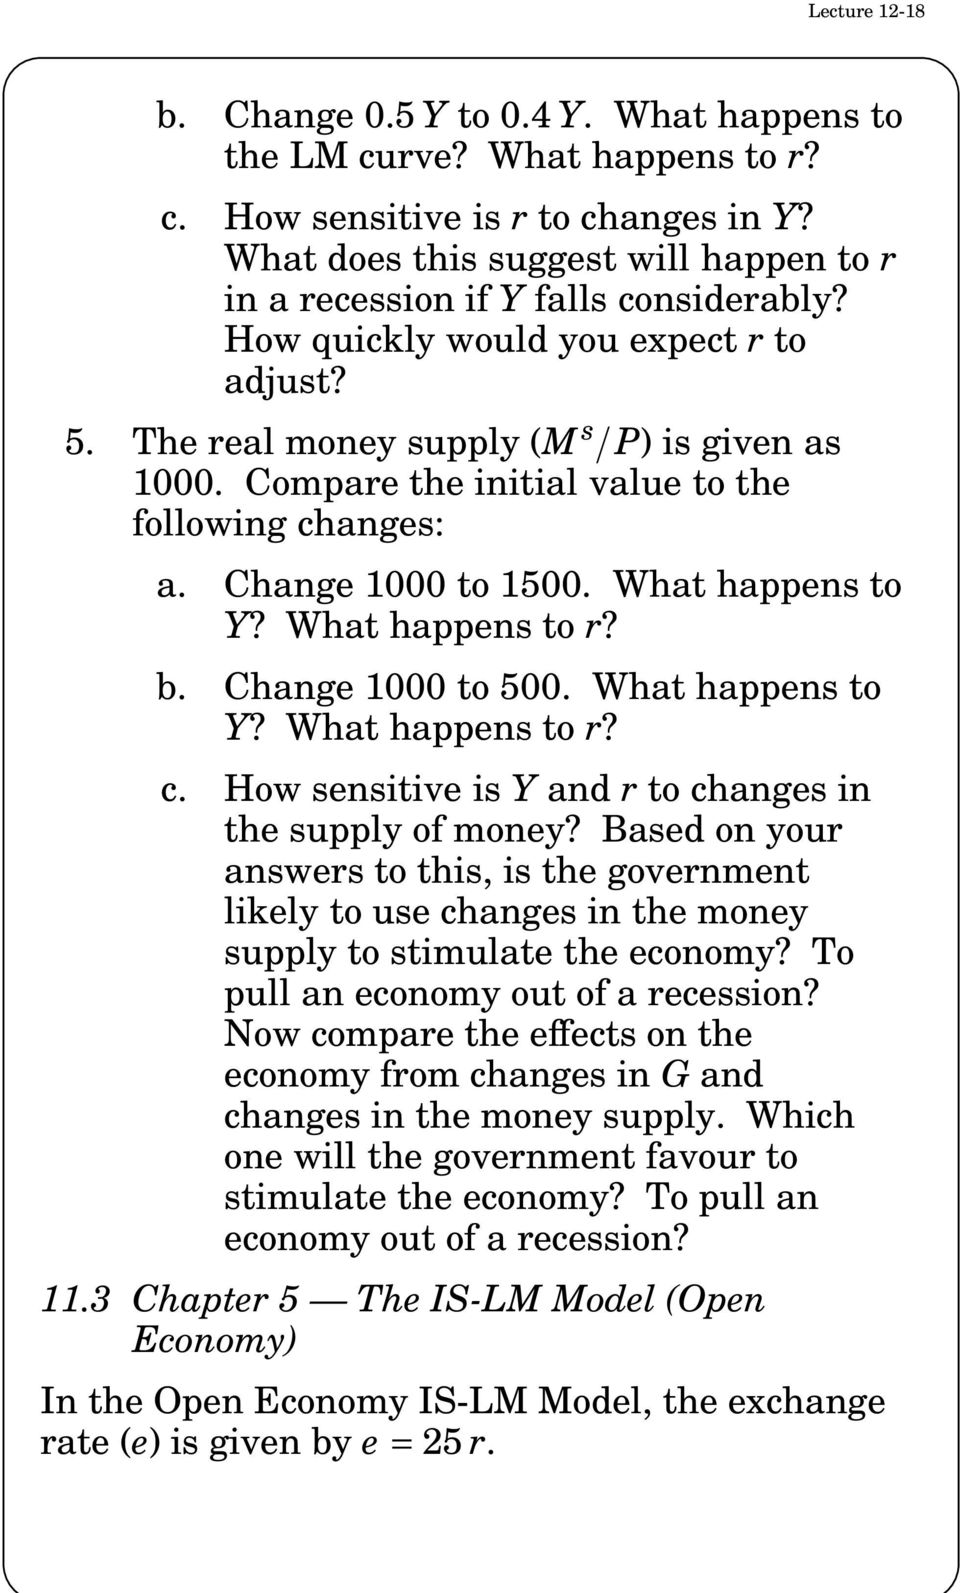 Compare the initial value to the following changes: a. Change 1000 to 1500. What happens to Y? What happens to r? b. Change 1000 to 500. What happens to Y? What happens to r? c. How sensitive is Y and r to changes in the supply of money?